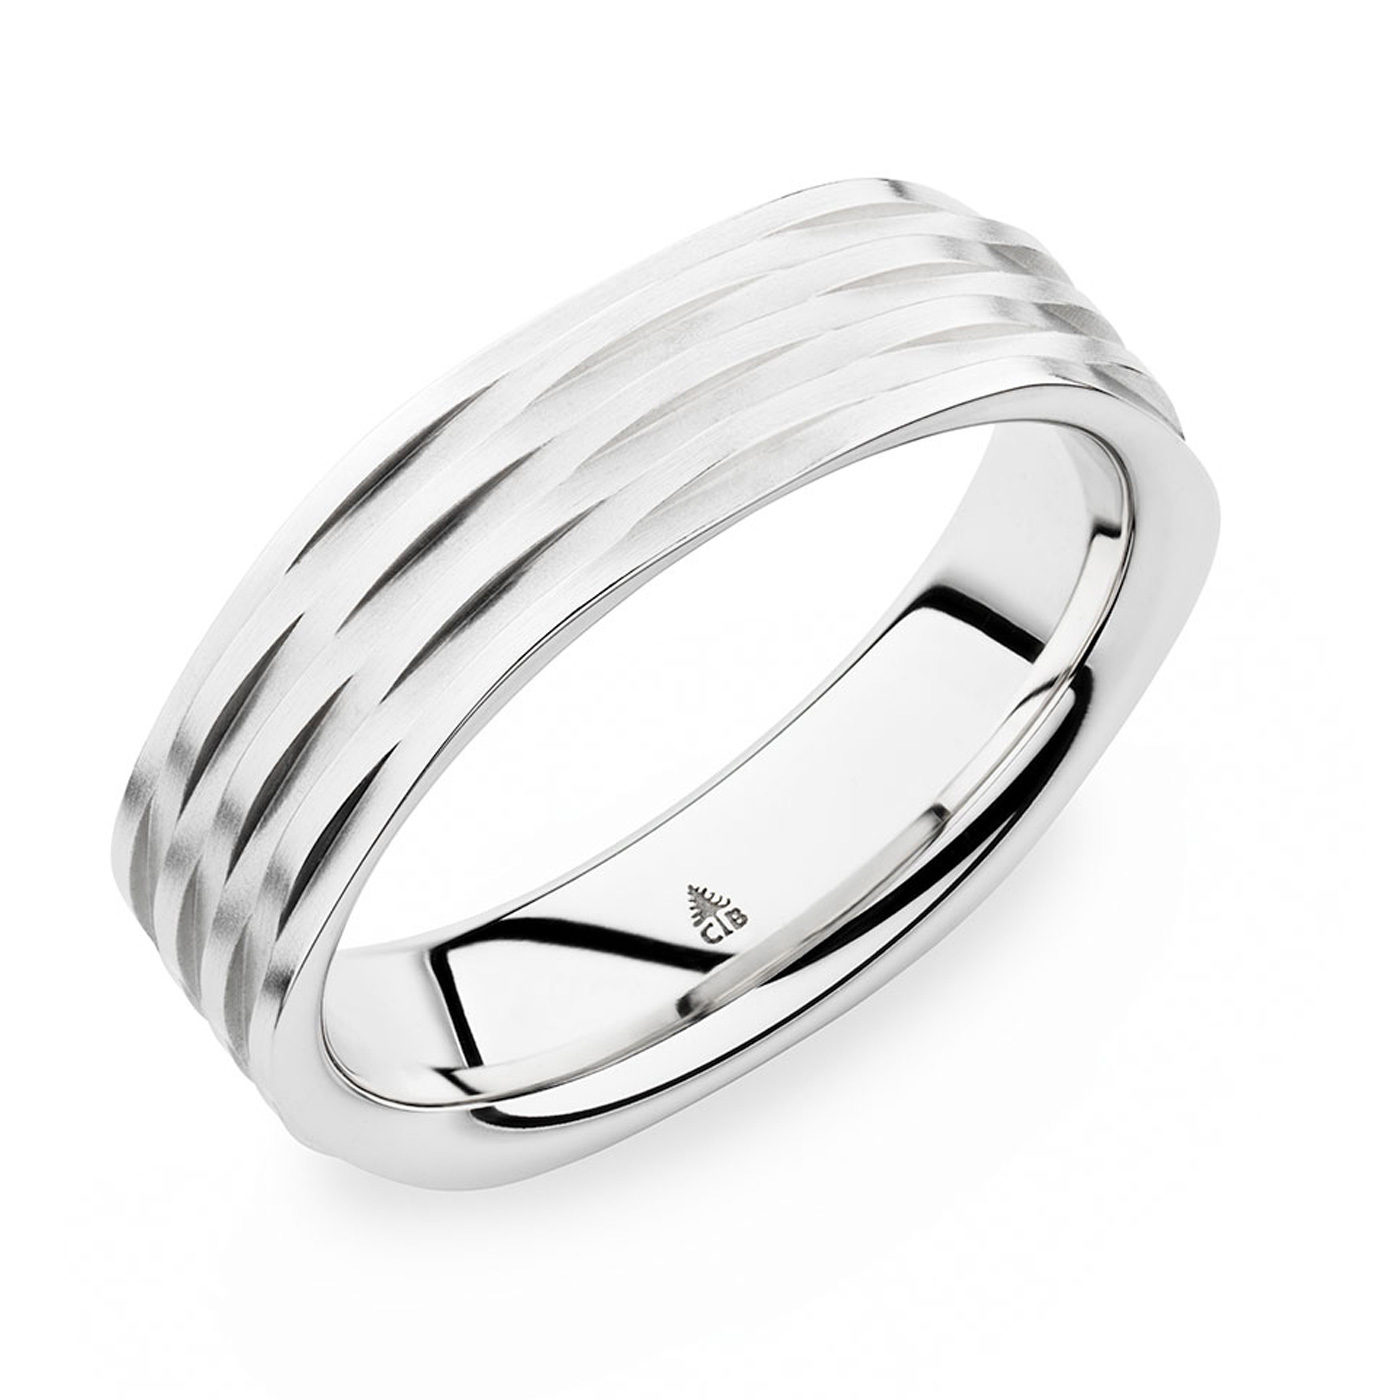 274427 christian bauer 18 karat wedding ring band tq for Christian bauer wedding rings